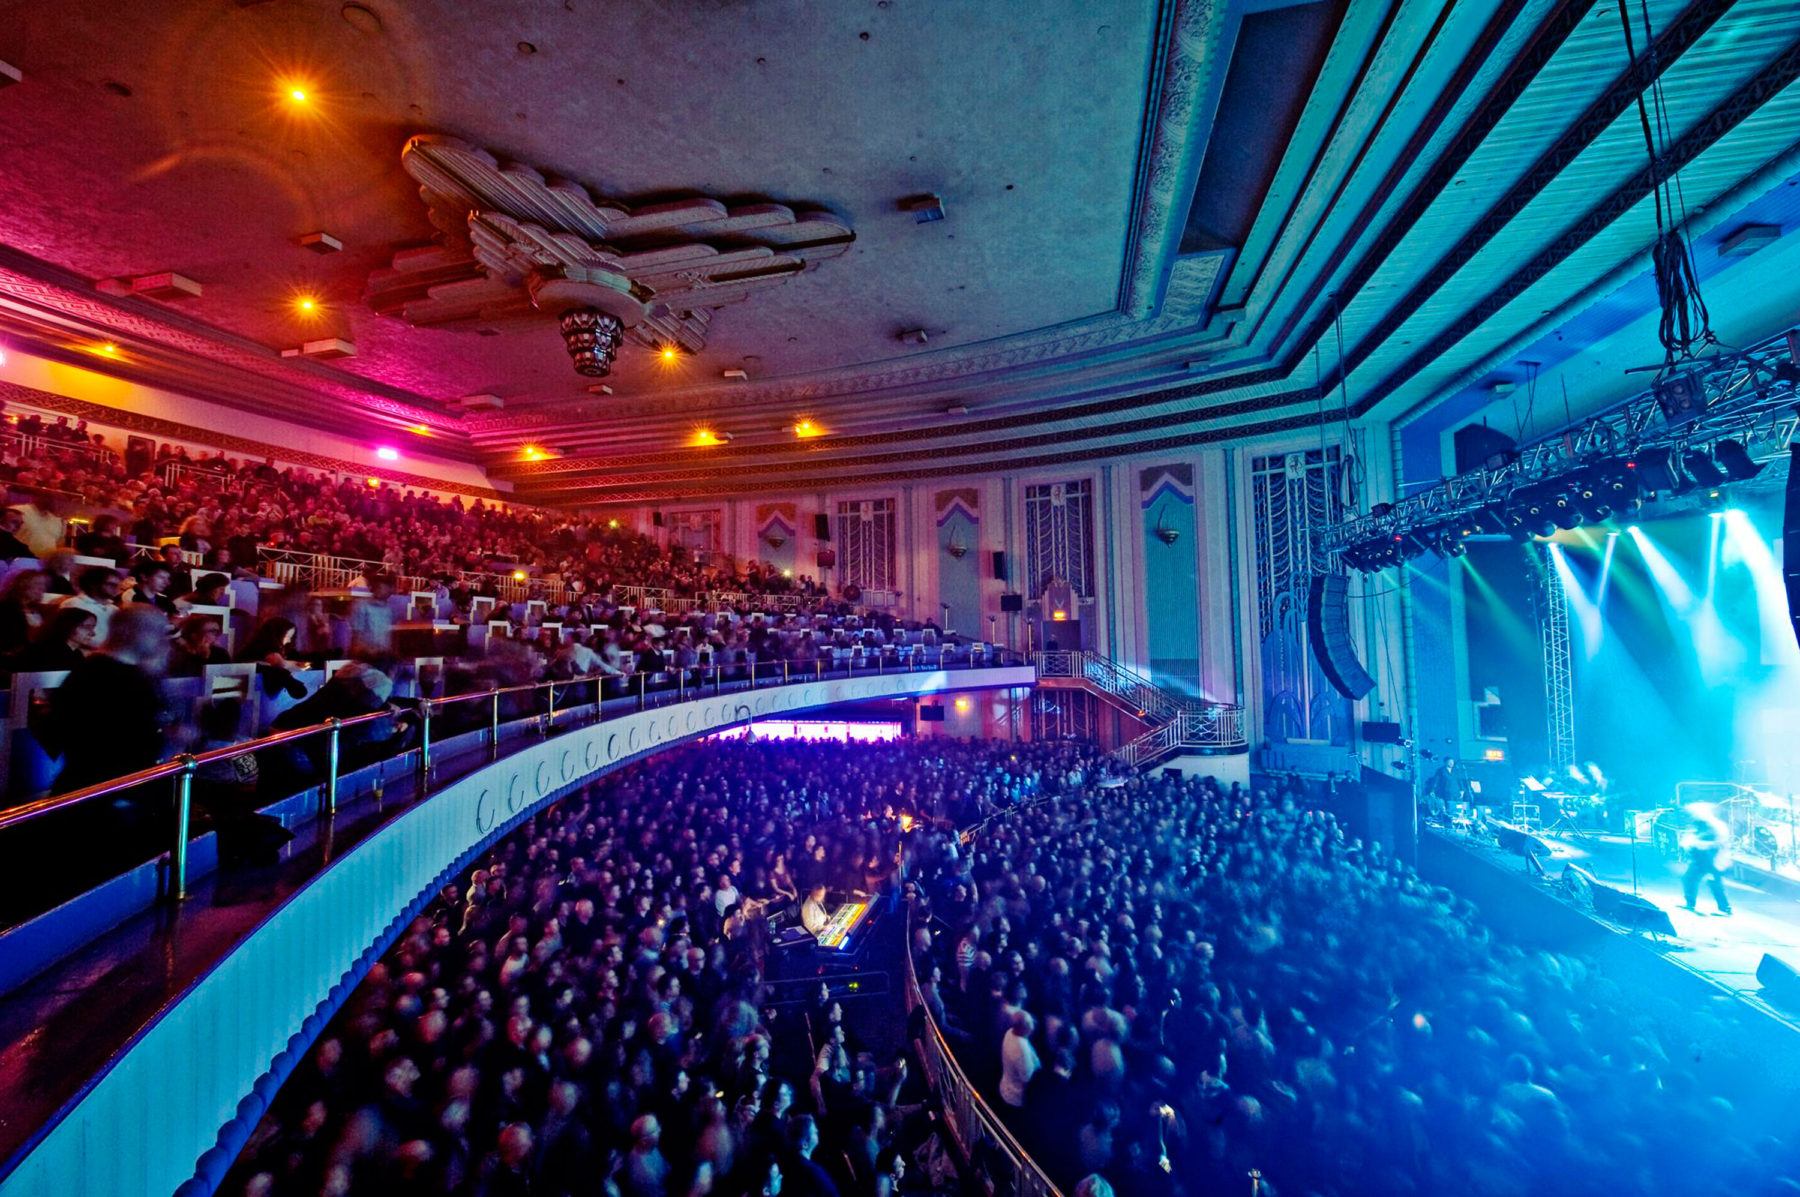 Troxy Banqueting Hall 02 Concert Conservation Art Deco